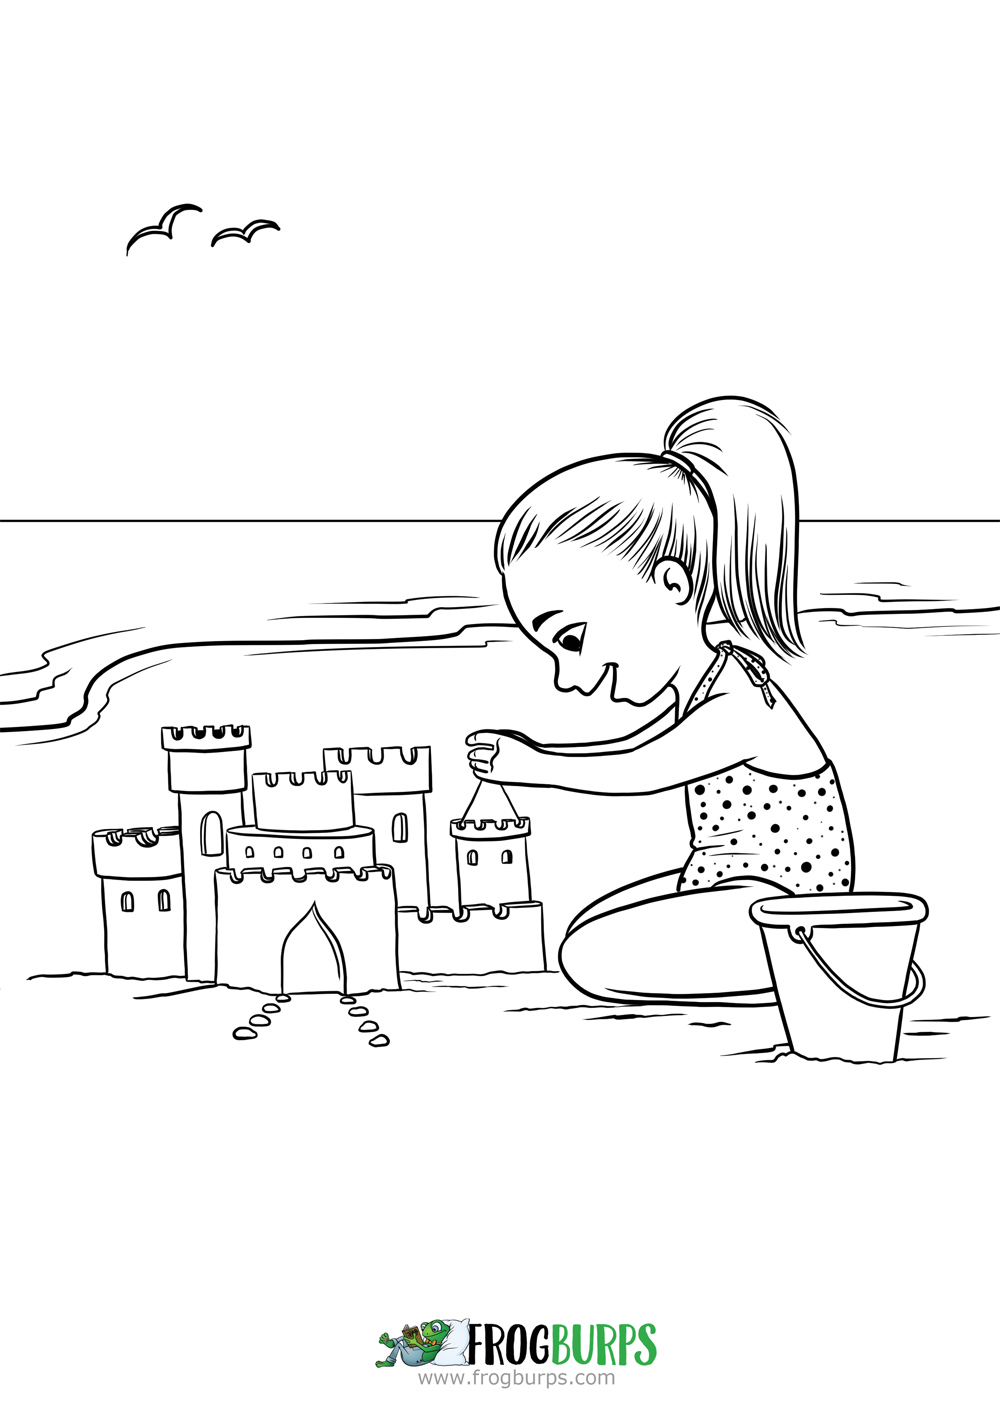 Sand Castle Coloring Page Frogburps